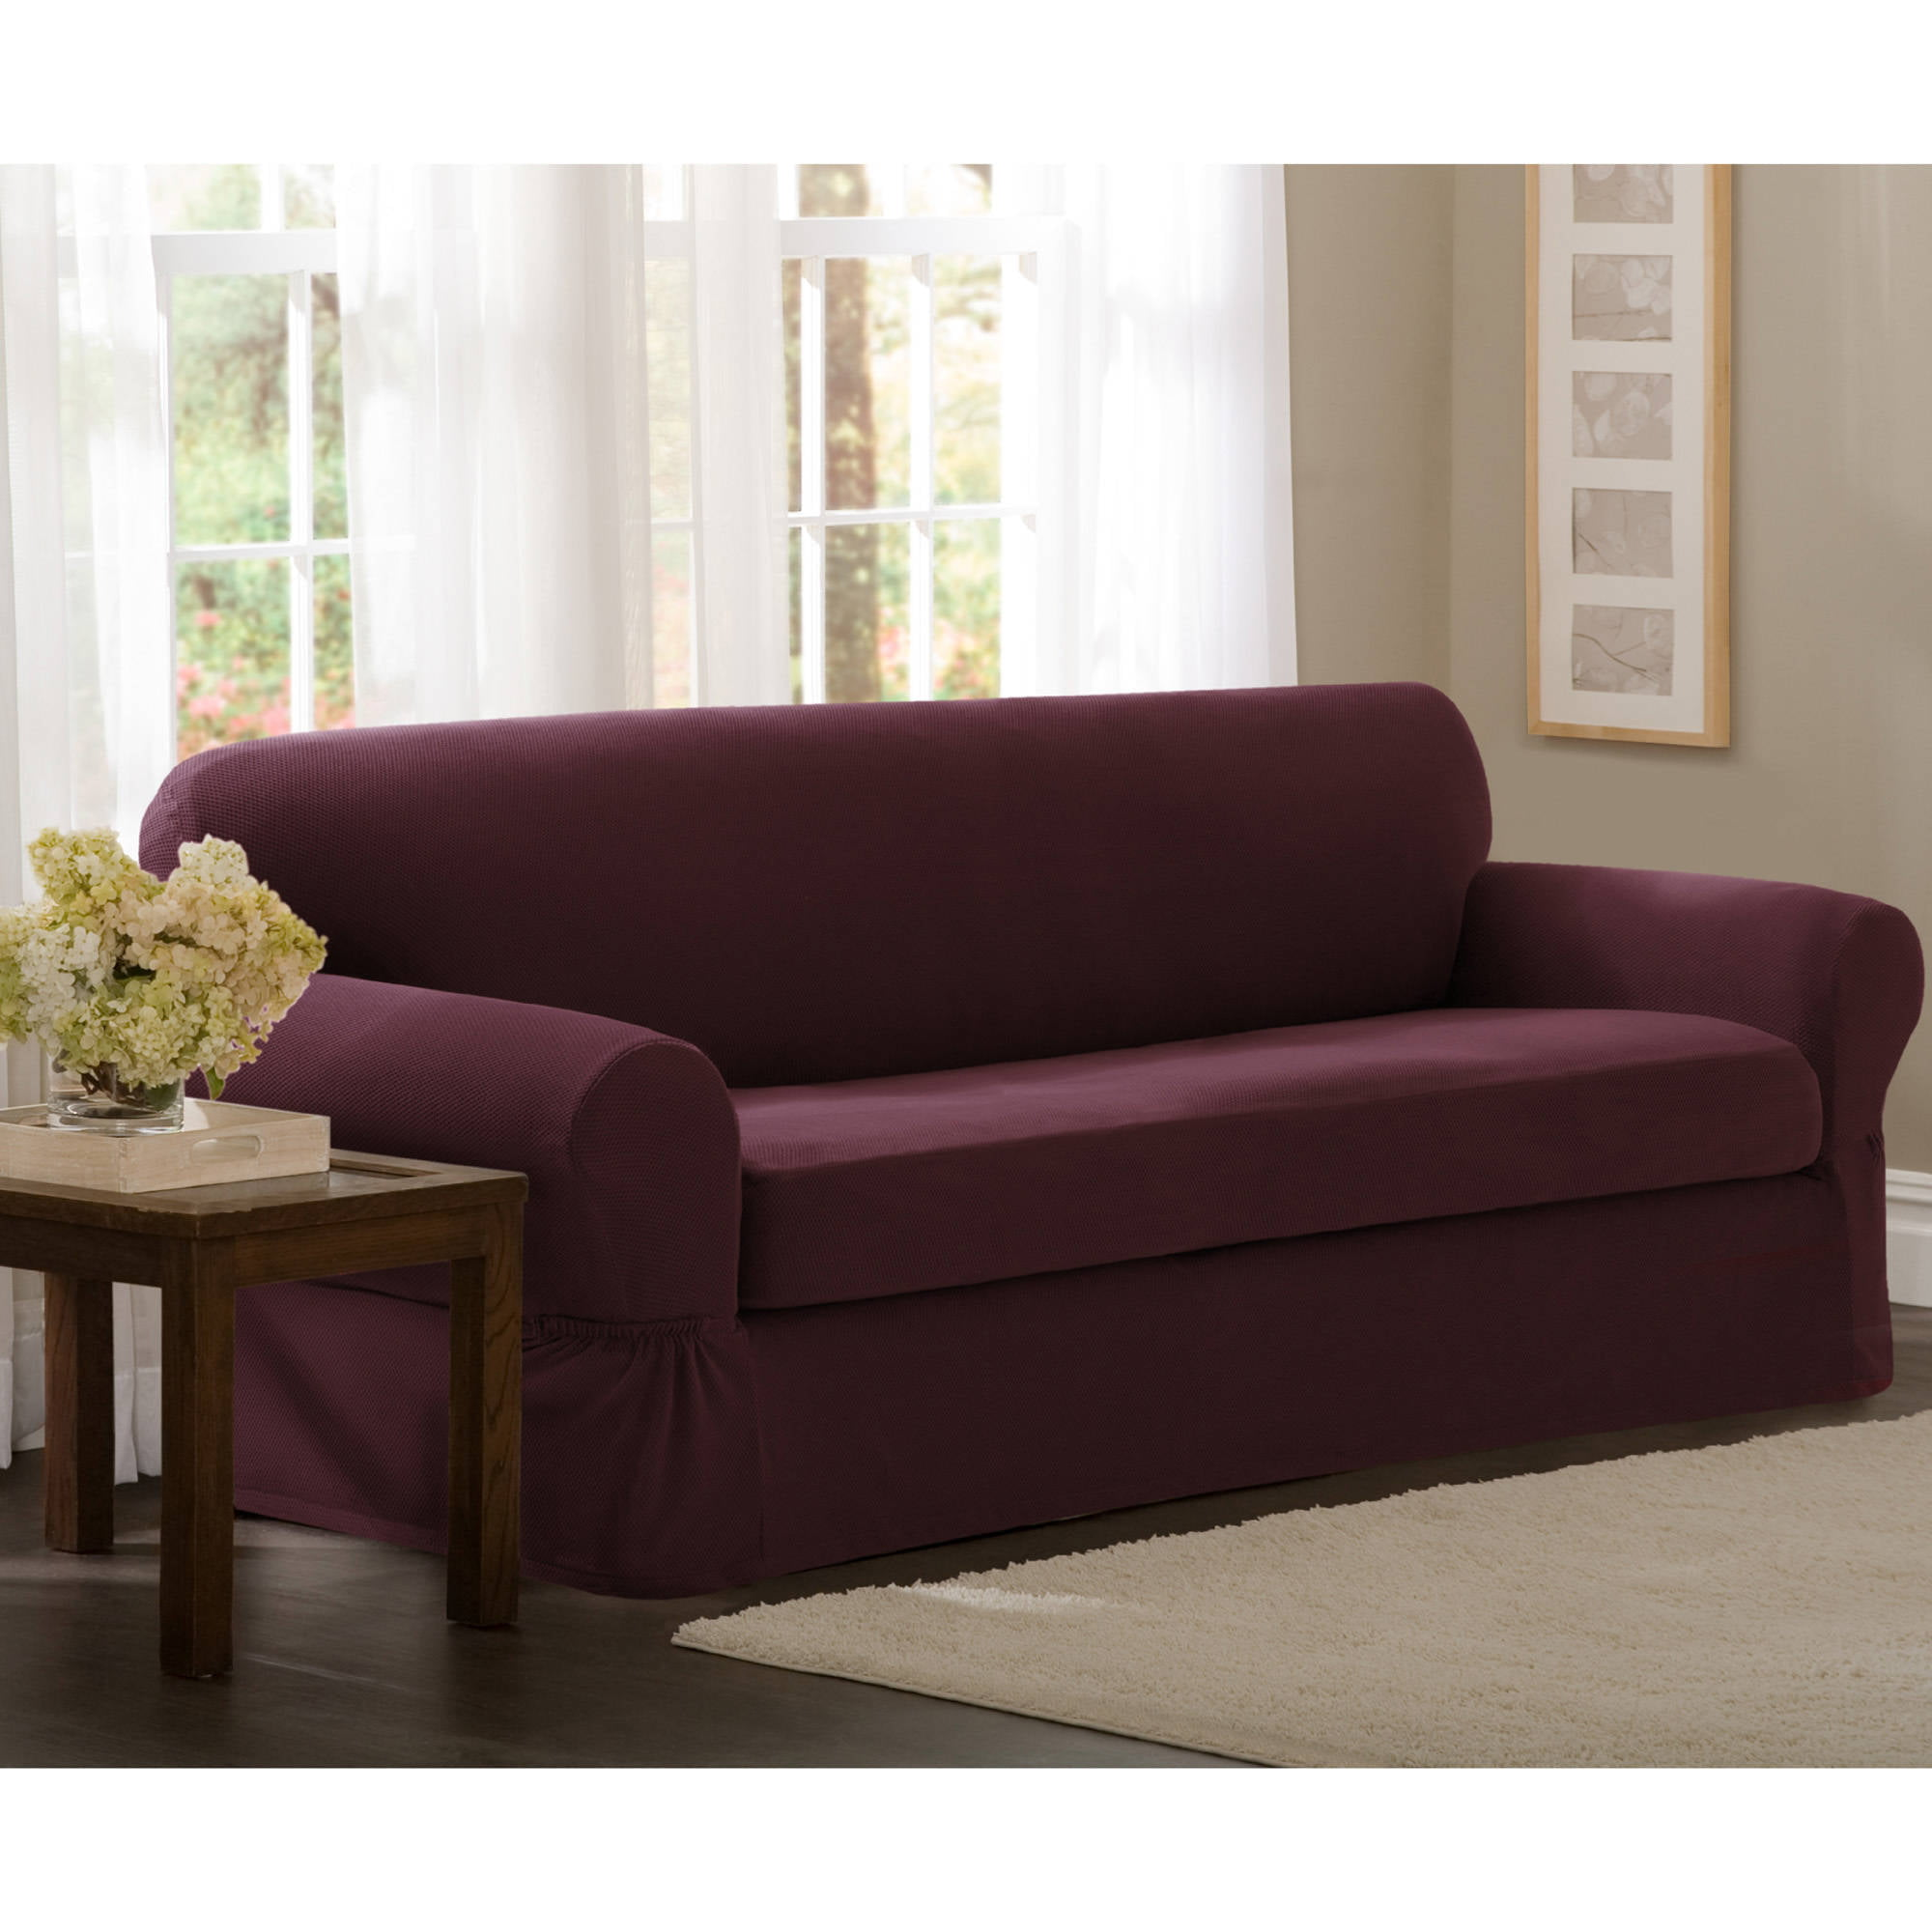 Maytex Stretch Pixel 2 Piece Sofa Furniture Cover Slipcover, Sand    Walmart.com